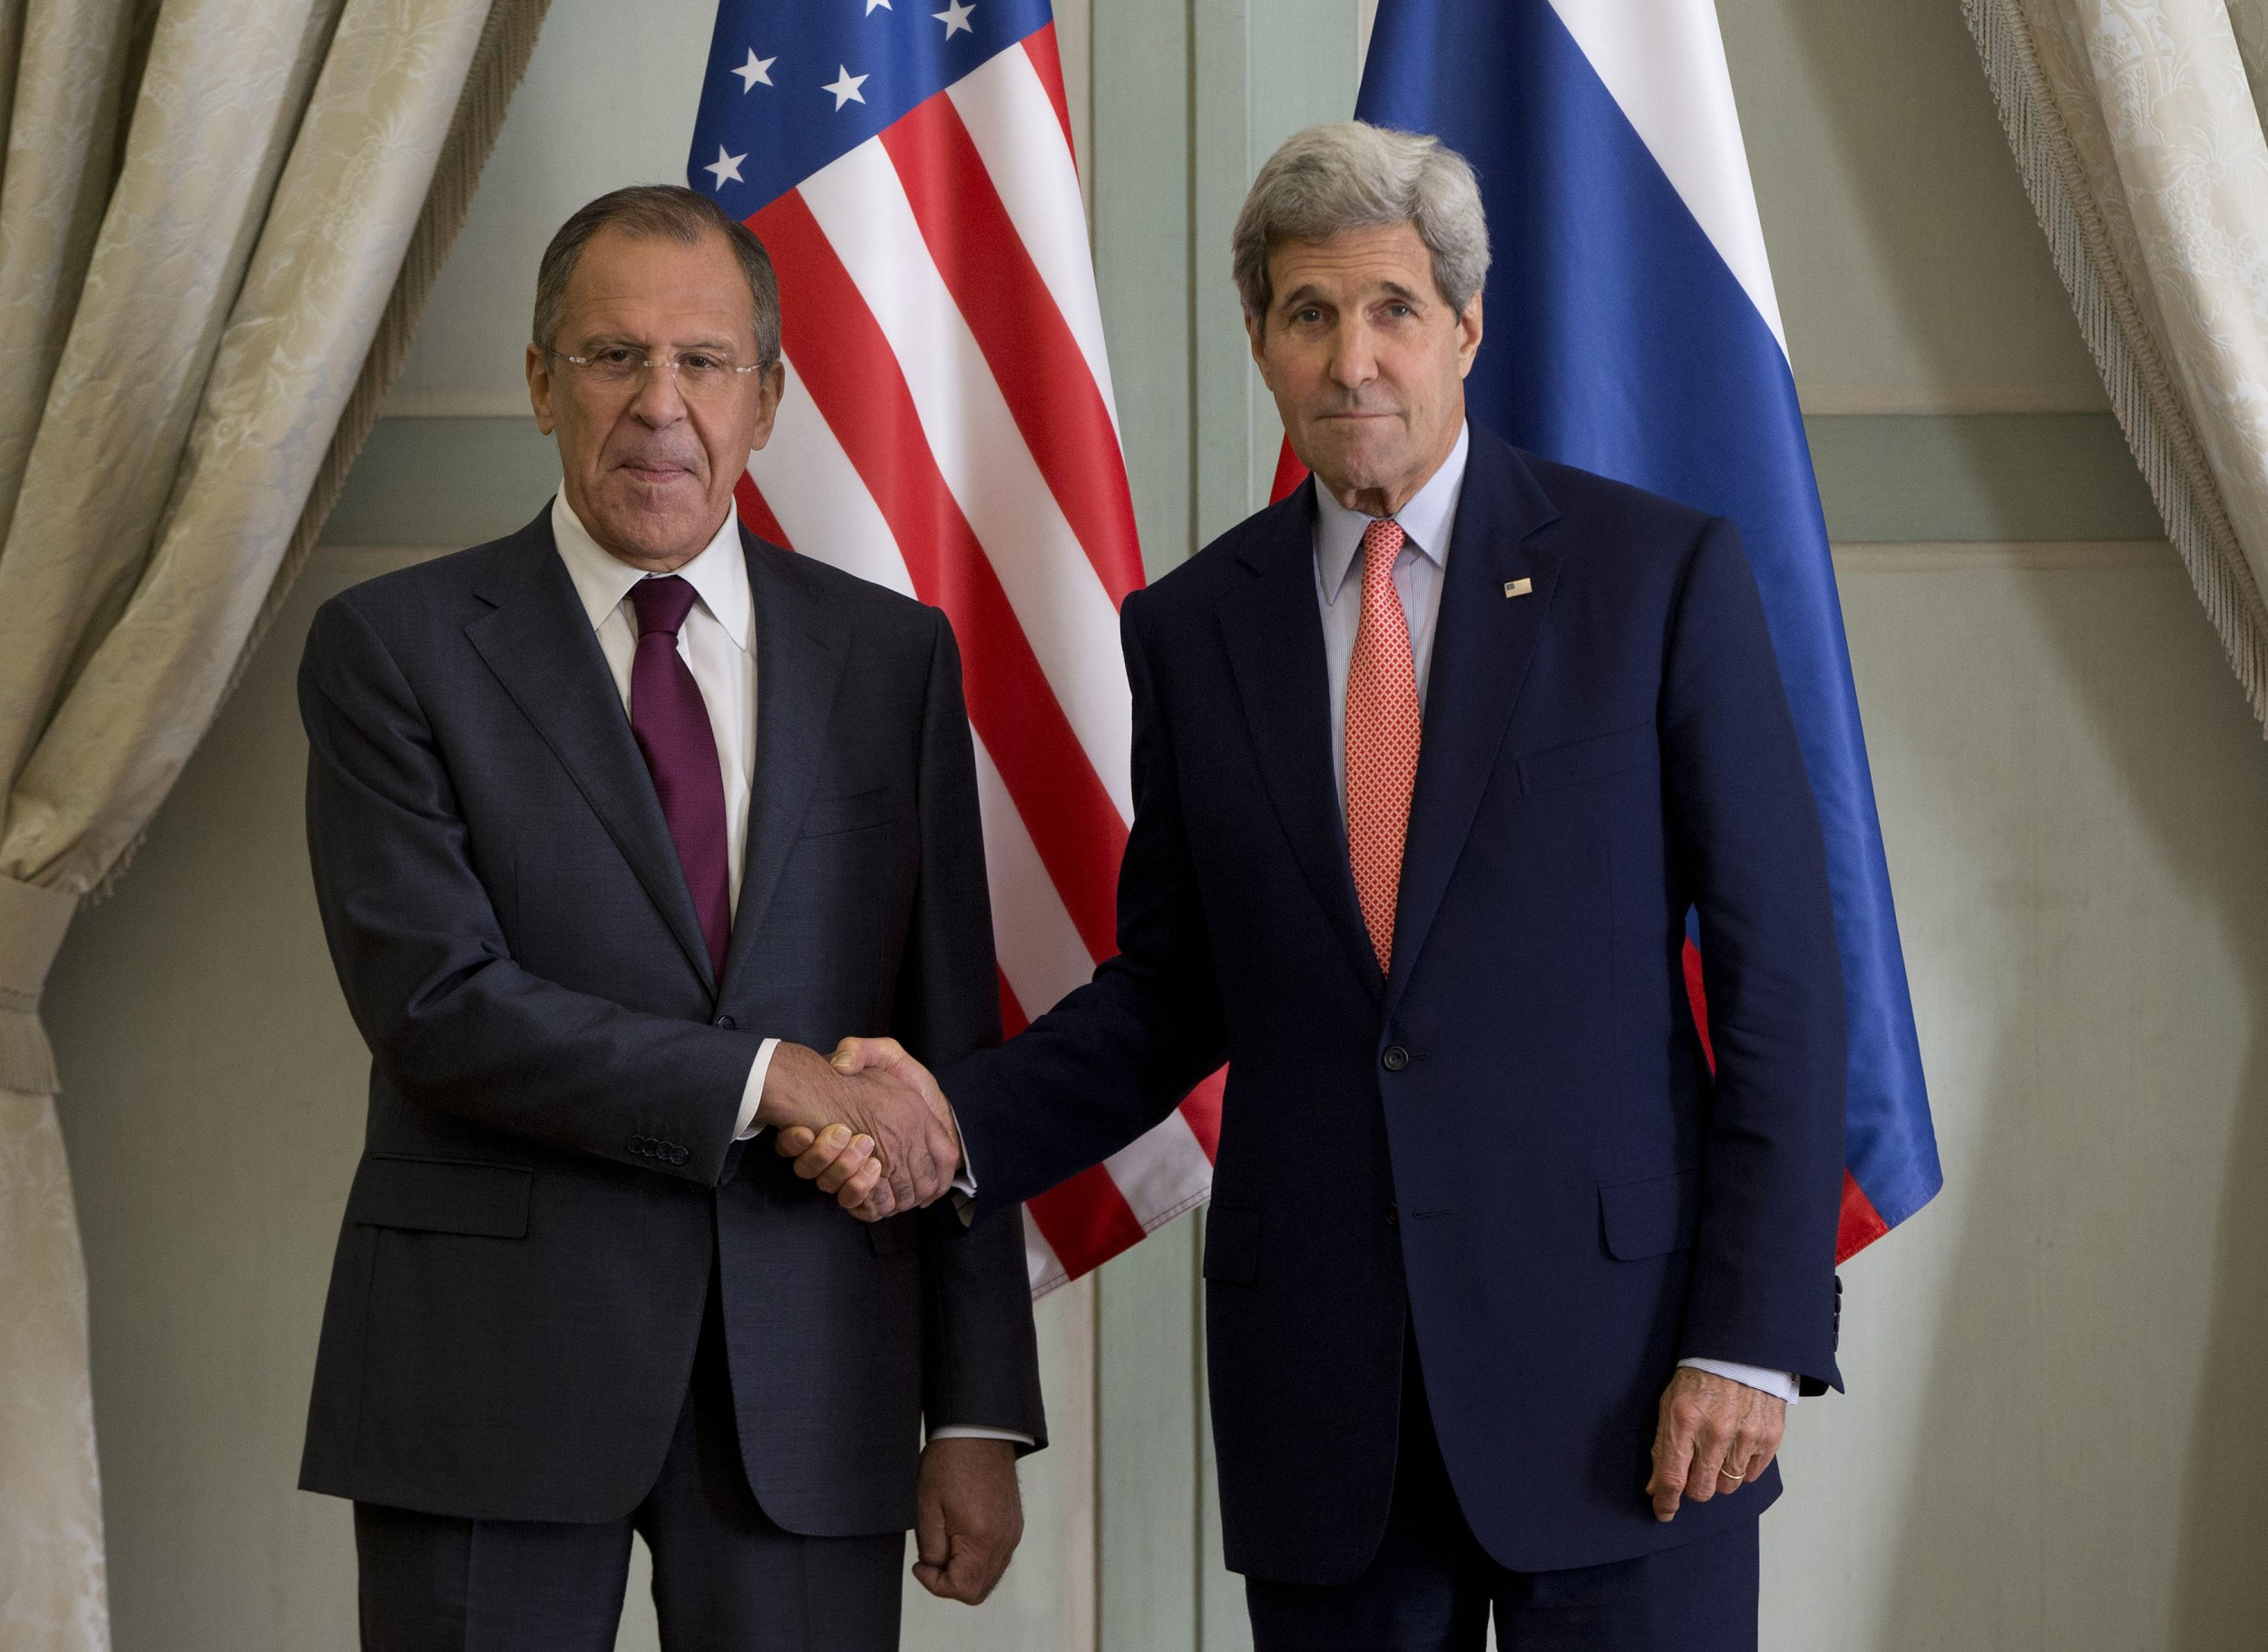 U.S and Russia to fight ISIS